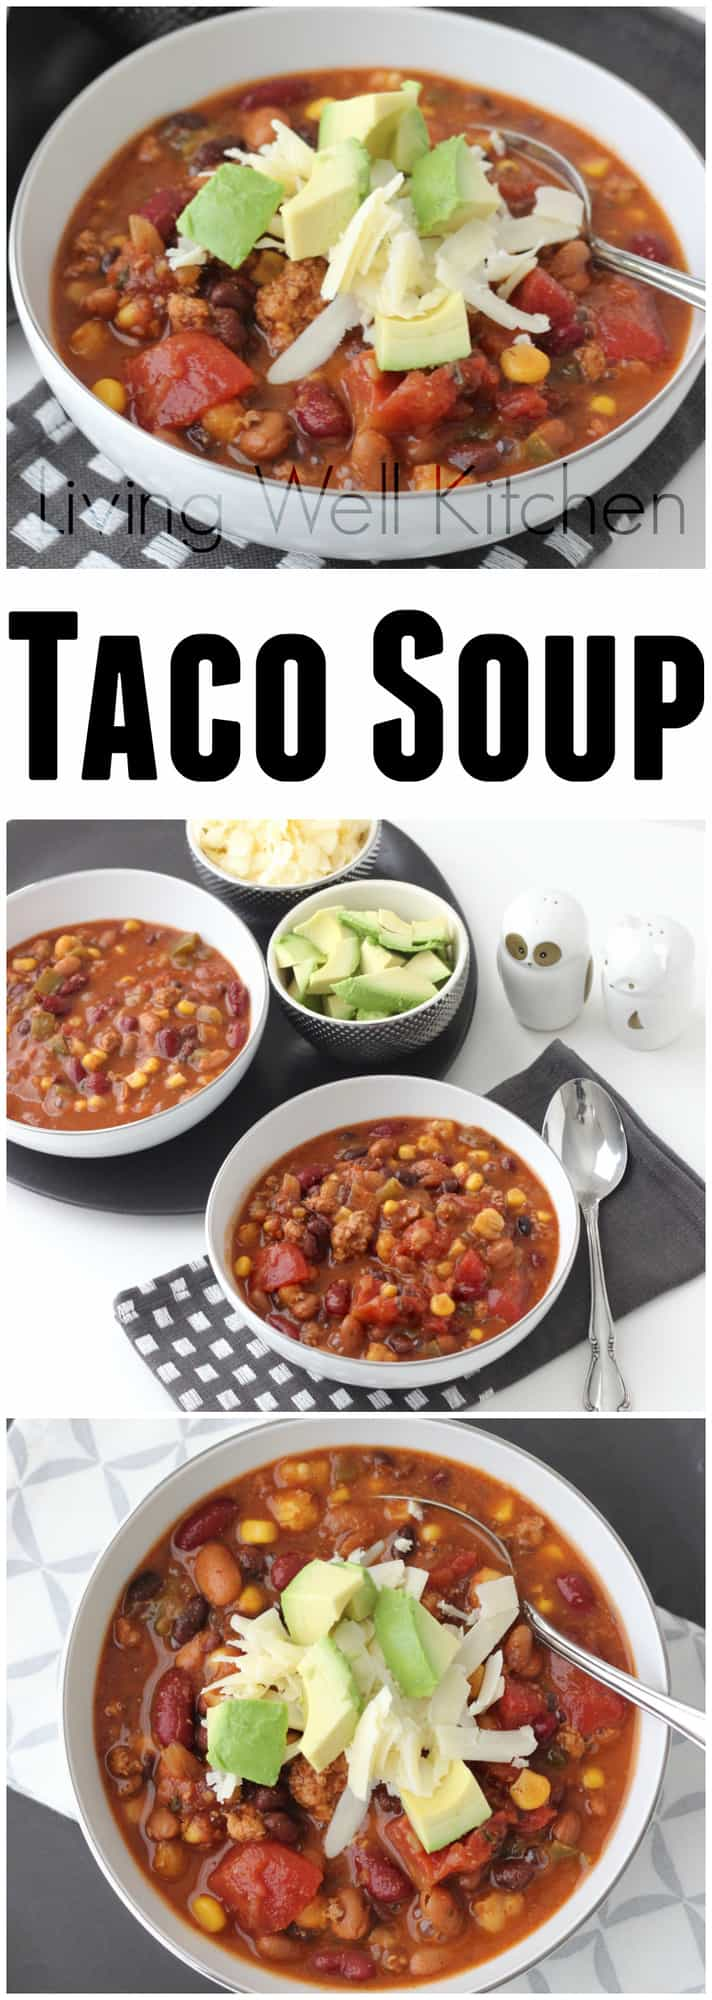 This tried and true recipe for easy Taco Soup makes enough to serve a hungry crowd plus have leftovers for later - from Living Well Kitchen @memeinge